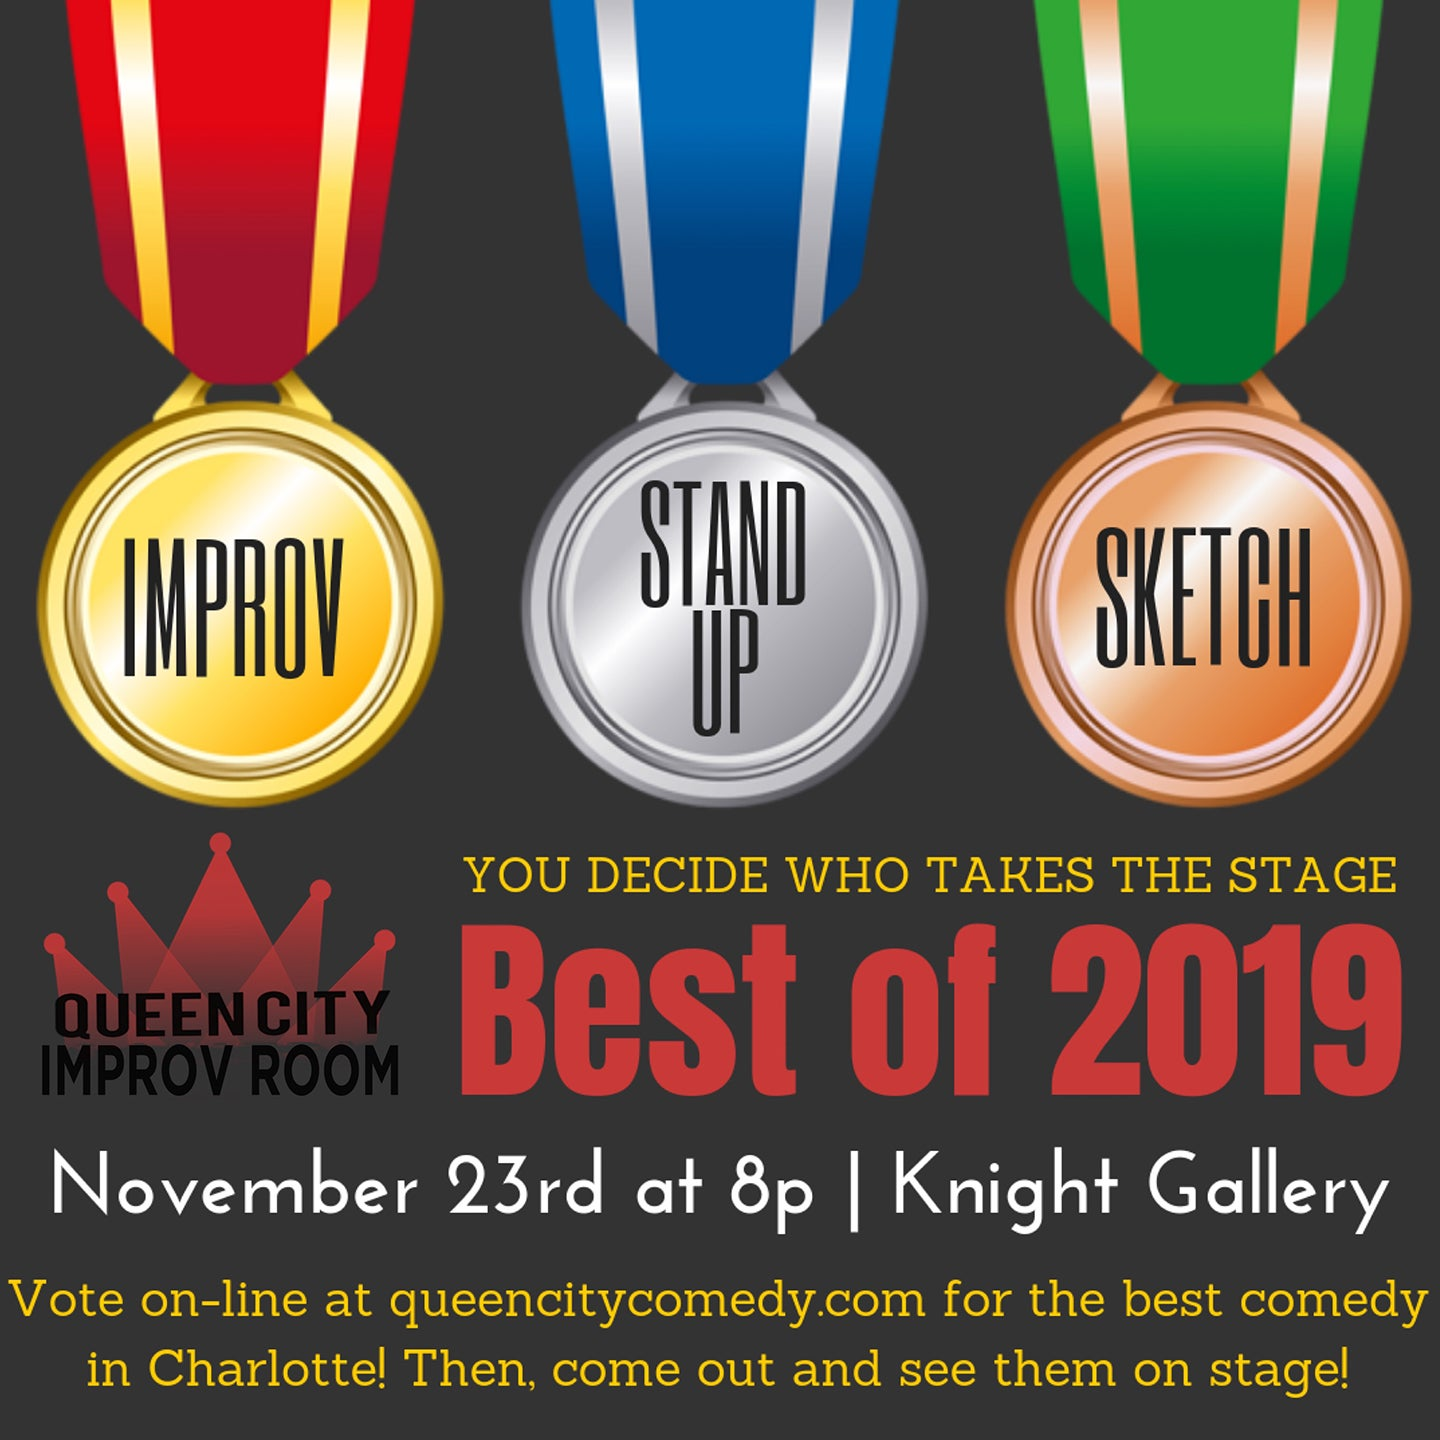 Queen City Improv Room: Best of 2019 Show